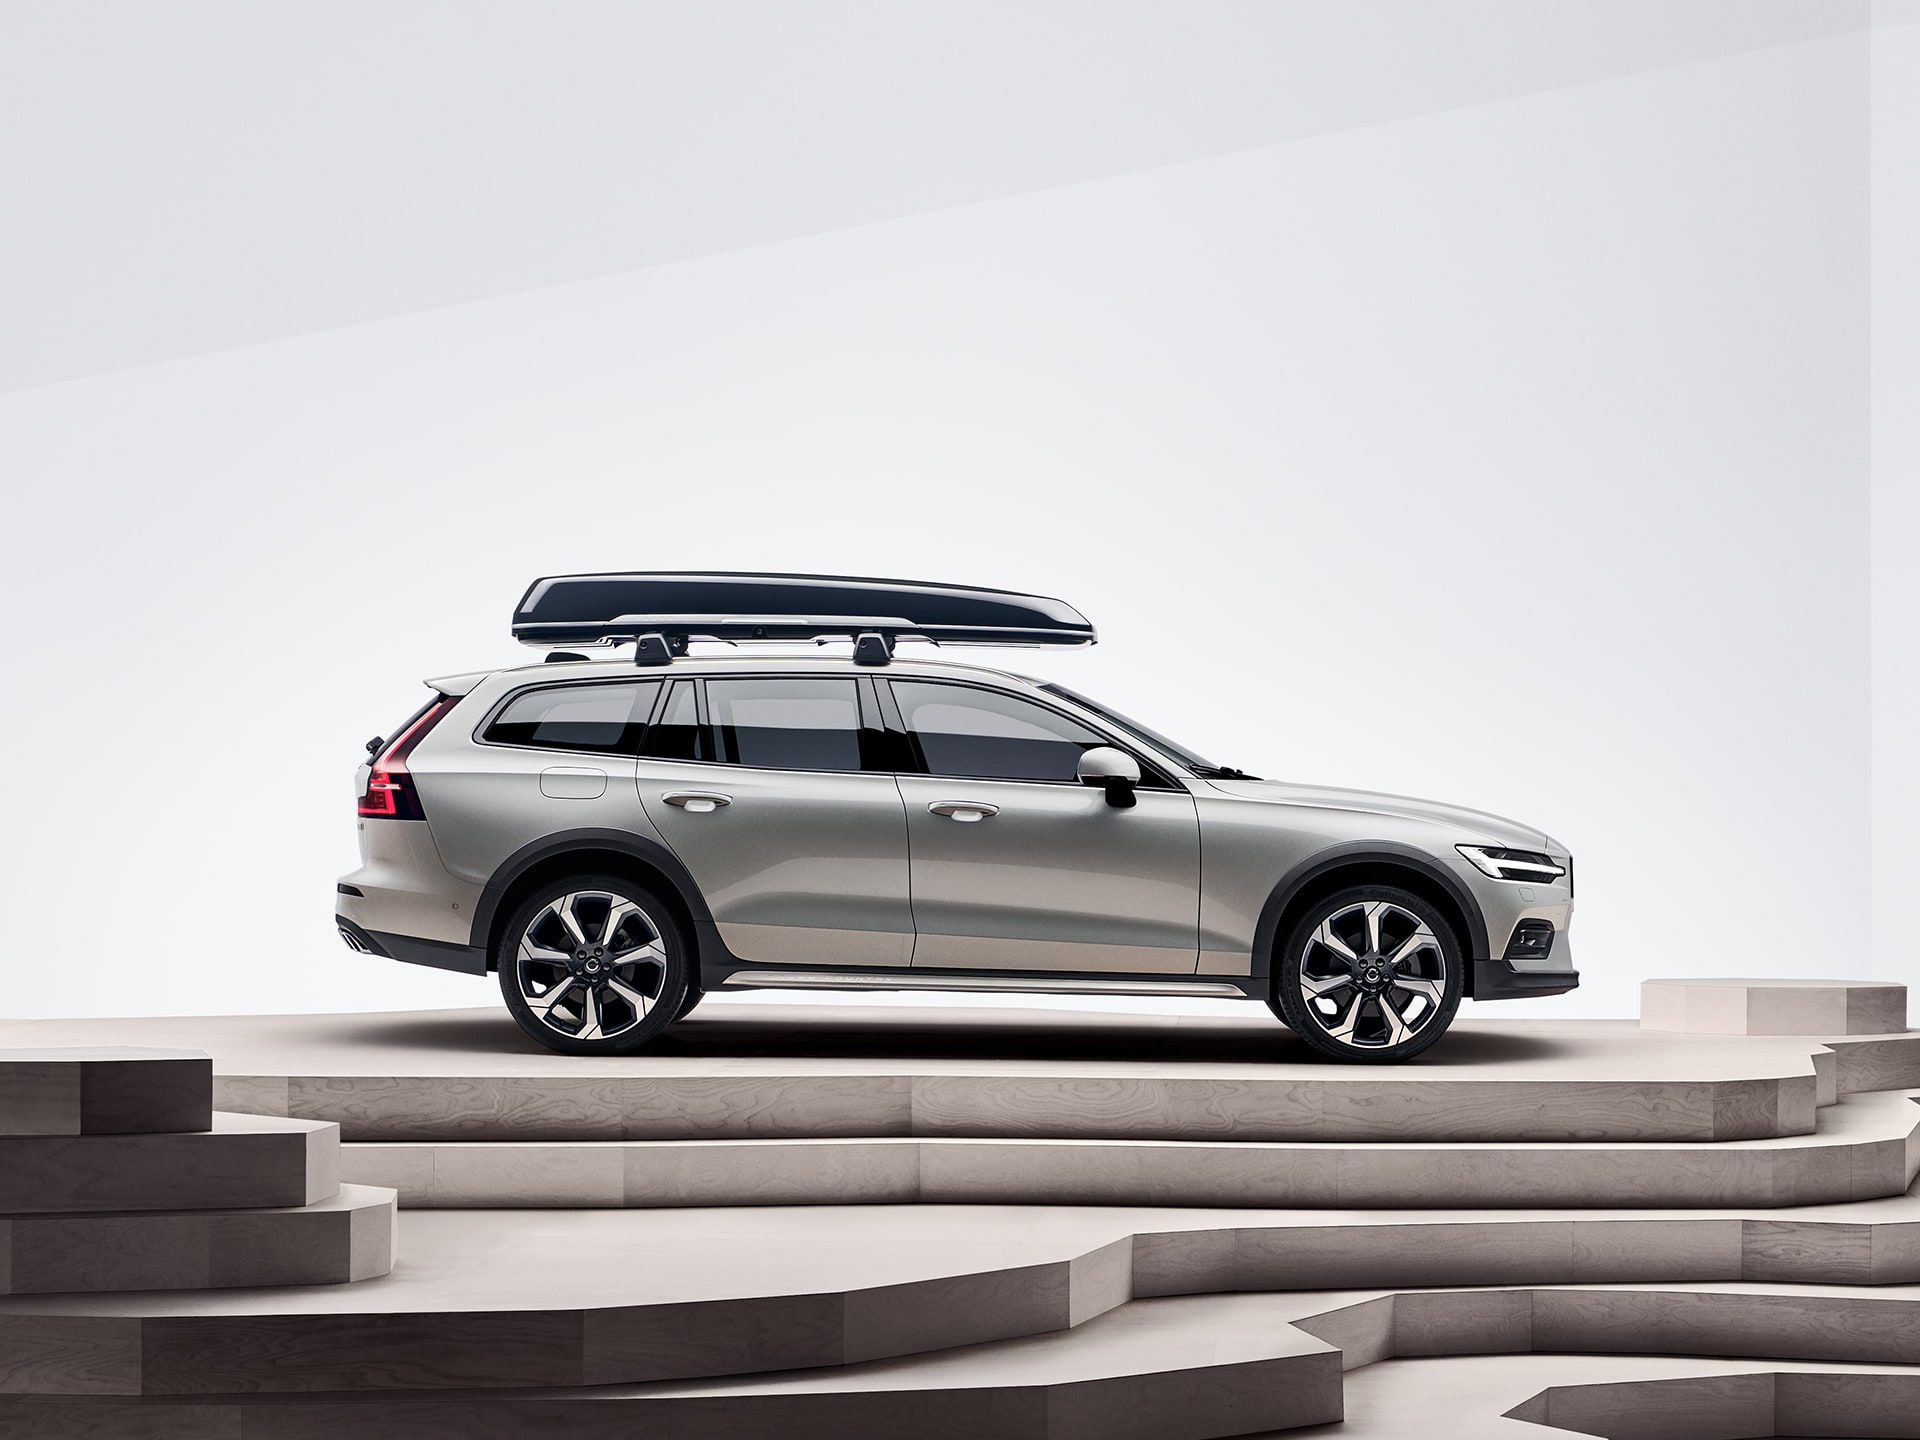 A beige Volvo V60 Cross Country with a roof box is parked on top of a staircase.